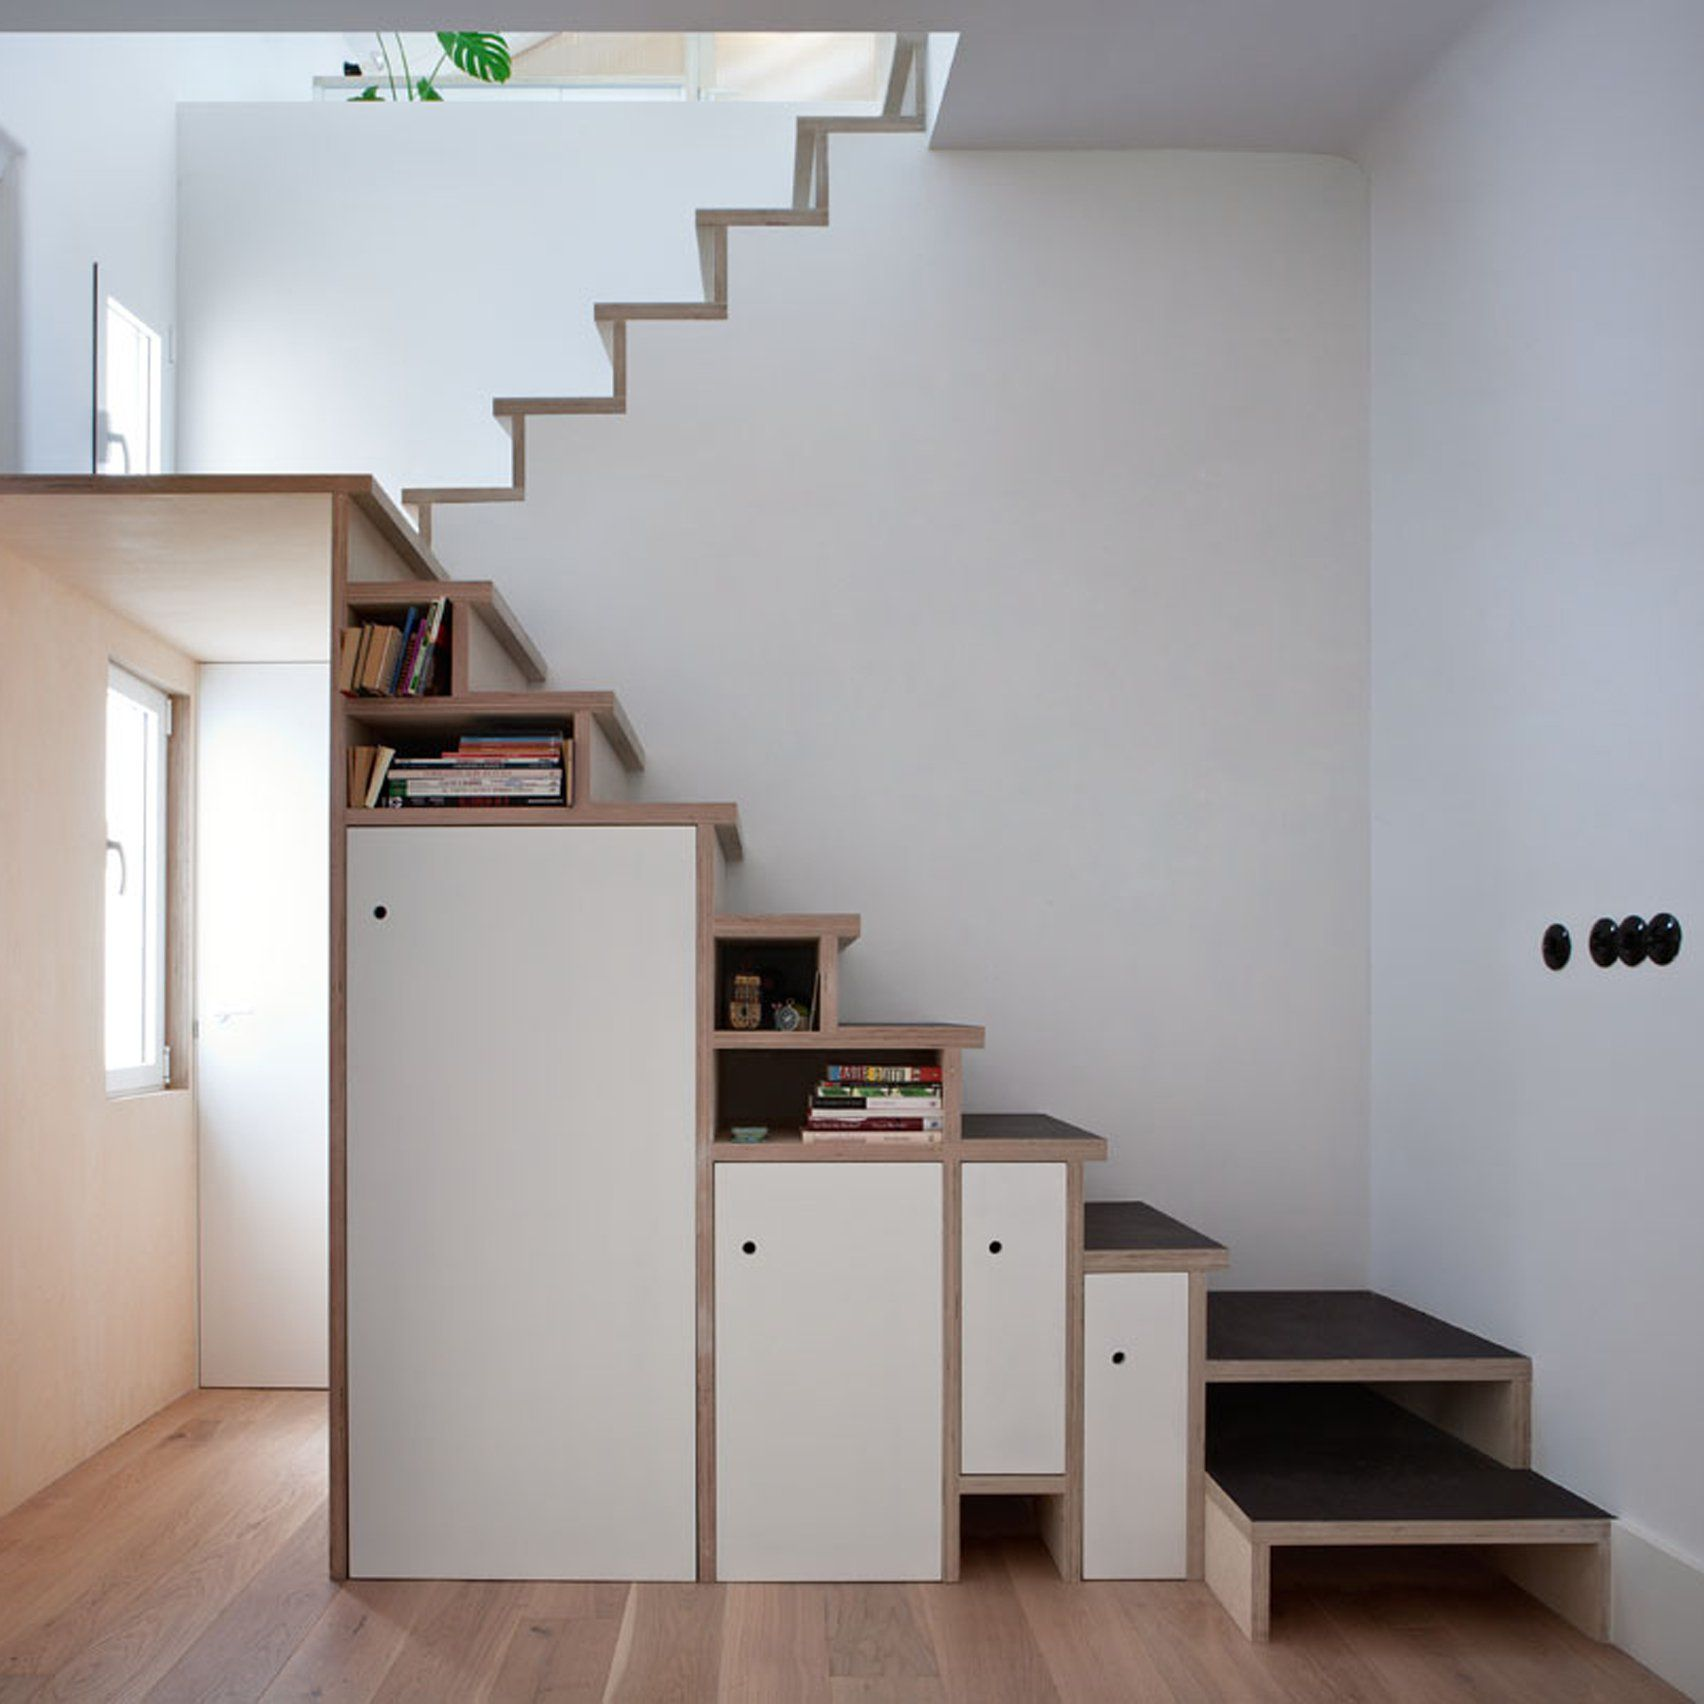 Small Homearchitecture: Space-saving Storage Solutions Are Built Into Room